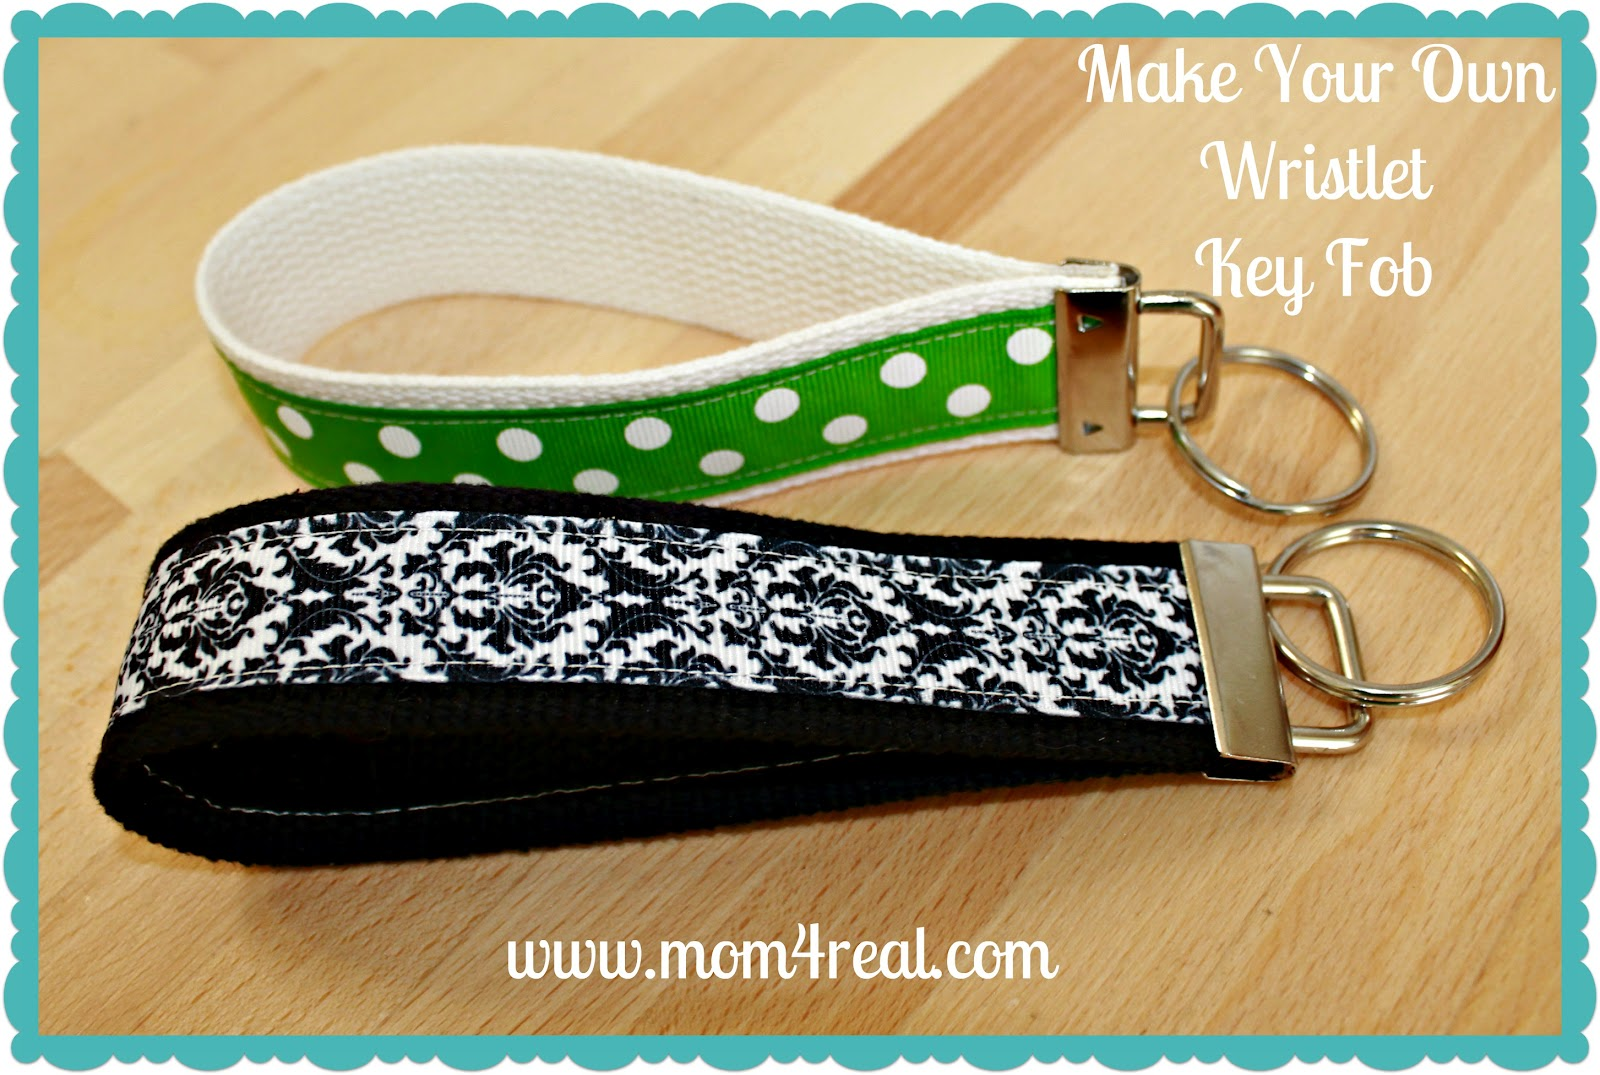 Make Your Own Wristlet Key Fob - Mom 4 Real